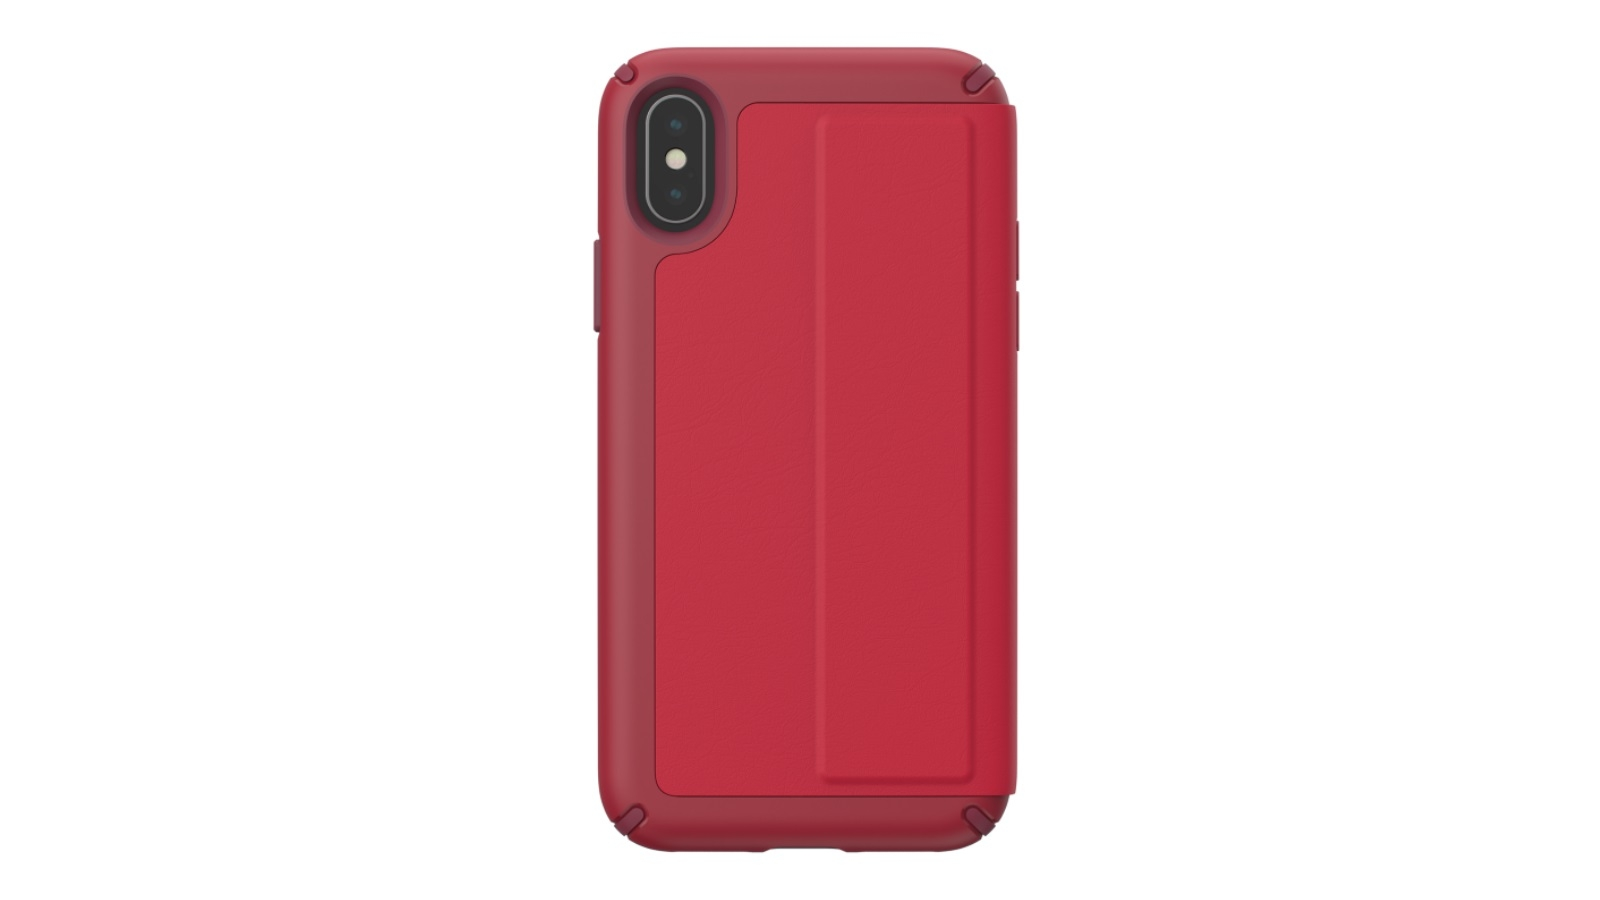 huge selection of 9c710 b62a7 Speck Presidio Folio Leather Case for iPhone XS - Red